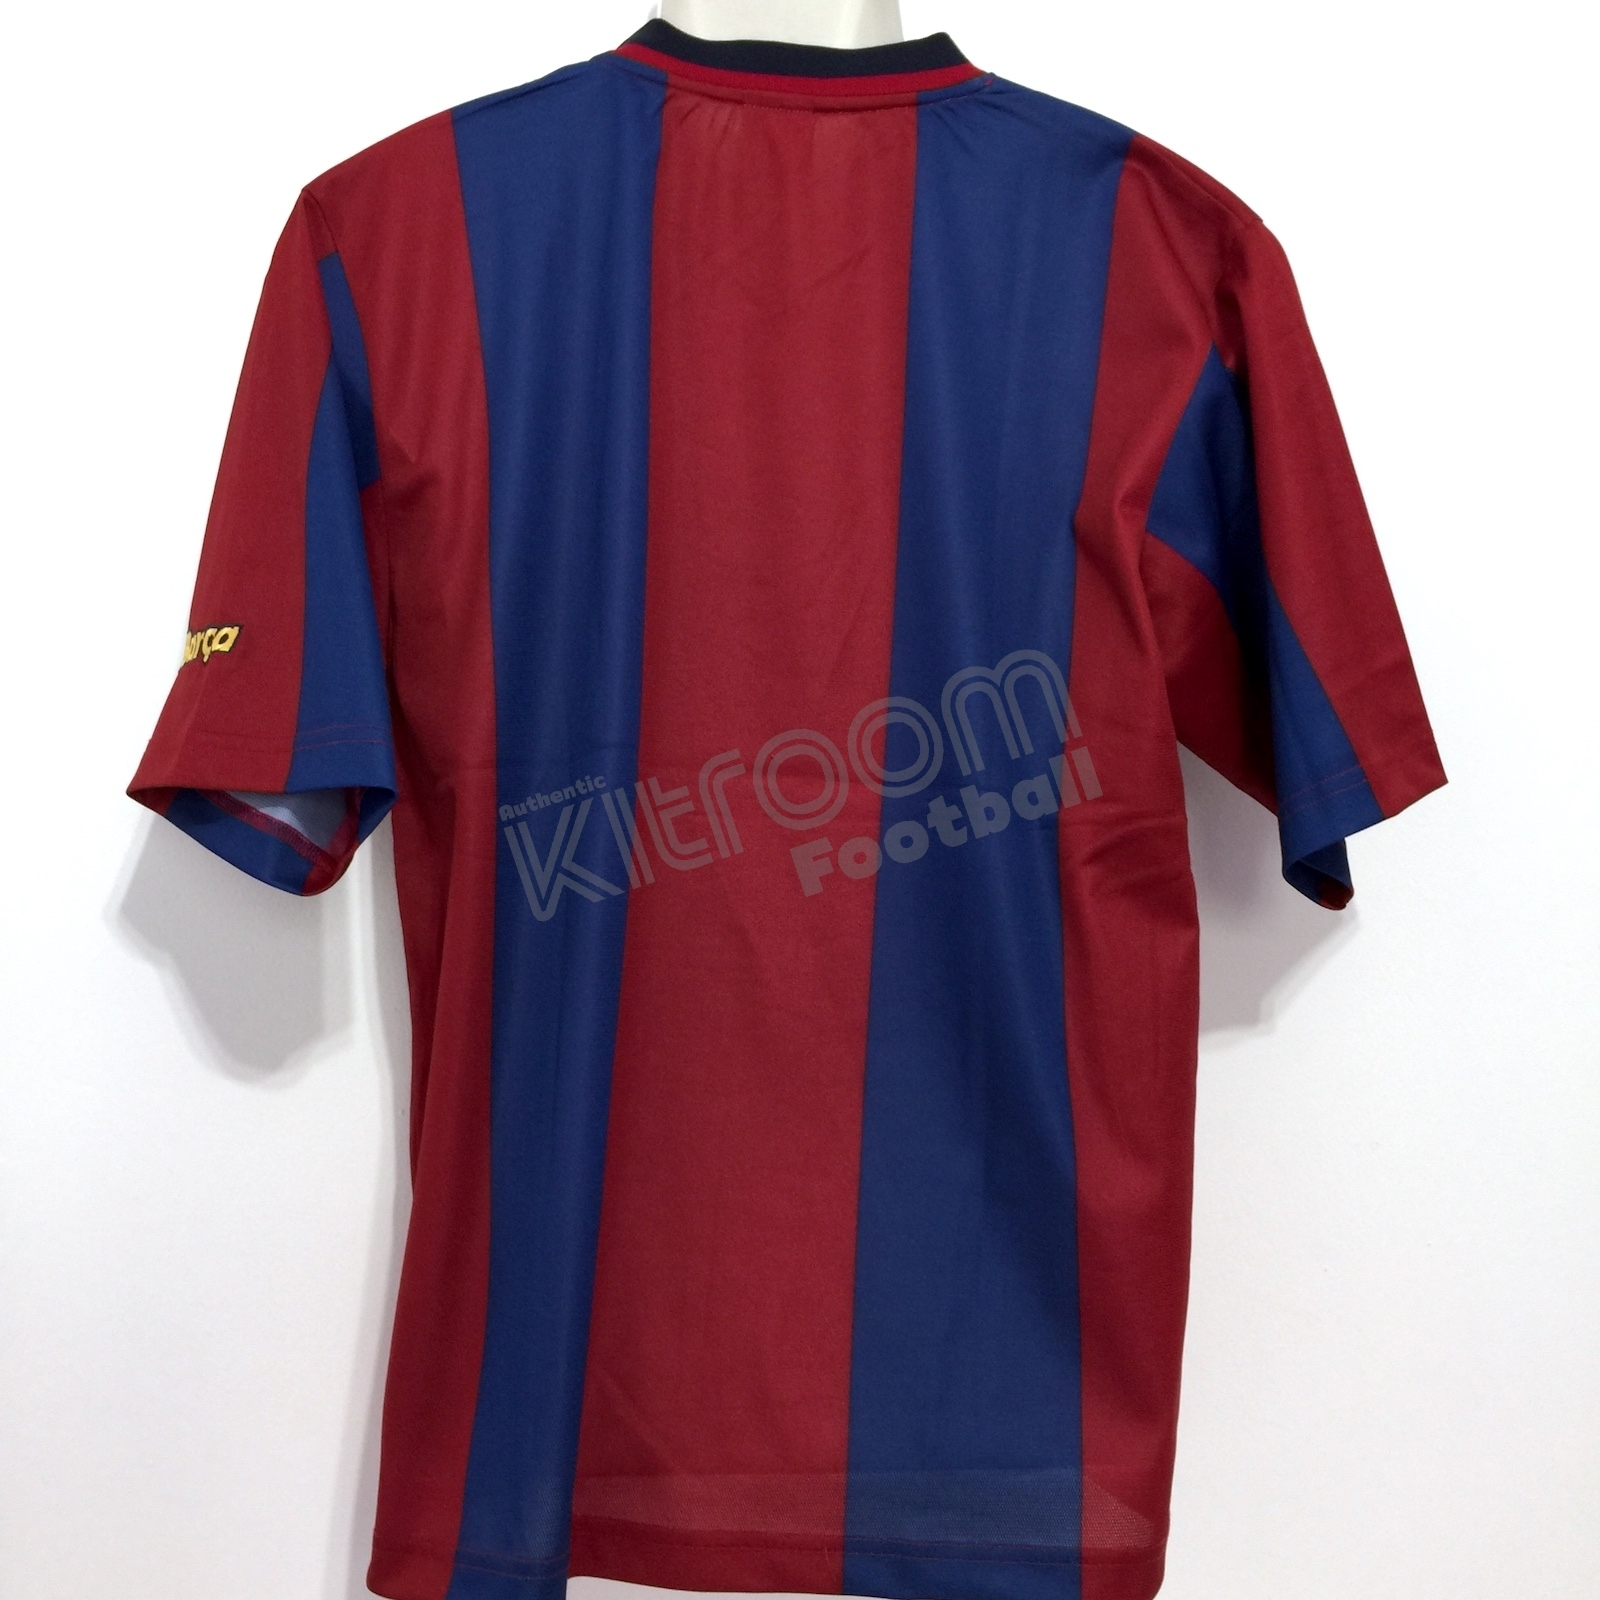 4003b9ea8 1998-99 Barcelona Home Shirt Nike (Very Good) M. FCB98HSSM-VG